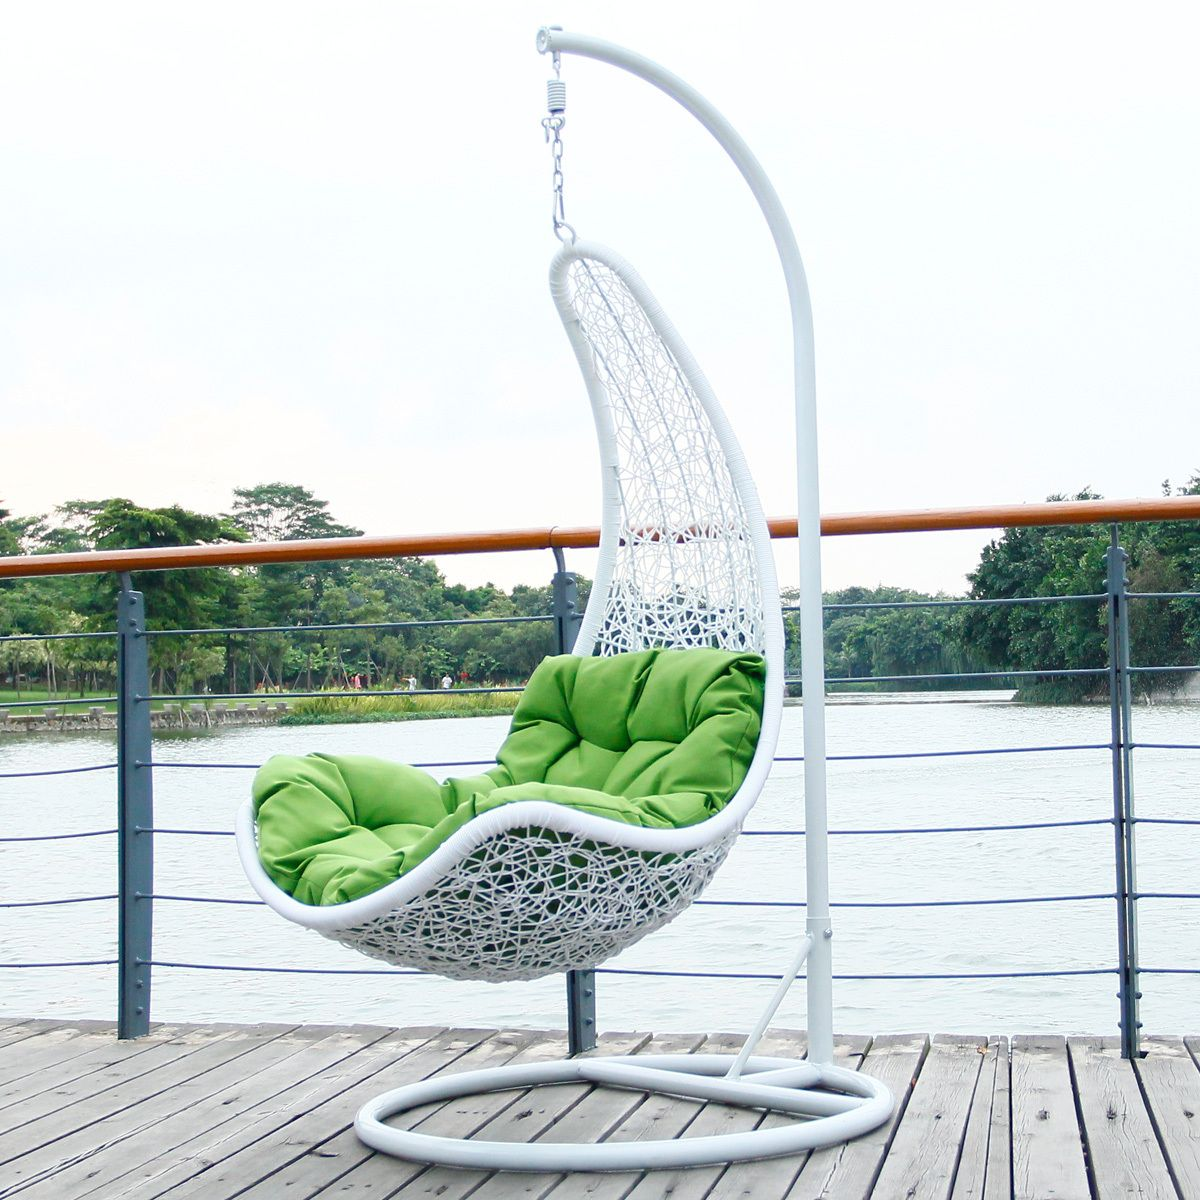 Furniture Rattan Chair Rattan Bird Nest Outdoor Casual Hanging Basket  Hanging Chair Indoor Rocking Chair Swing Chair Cushion(China (Mainland))